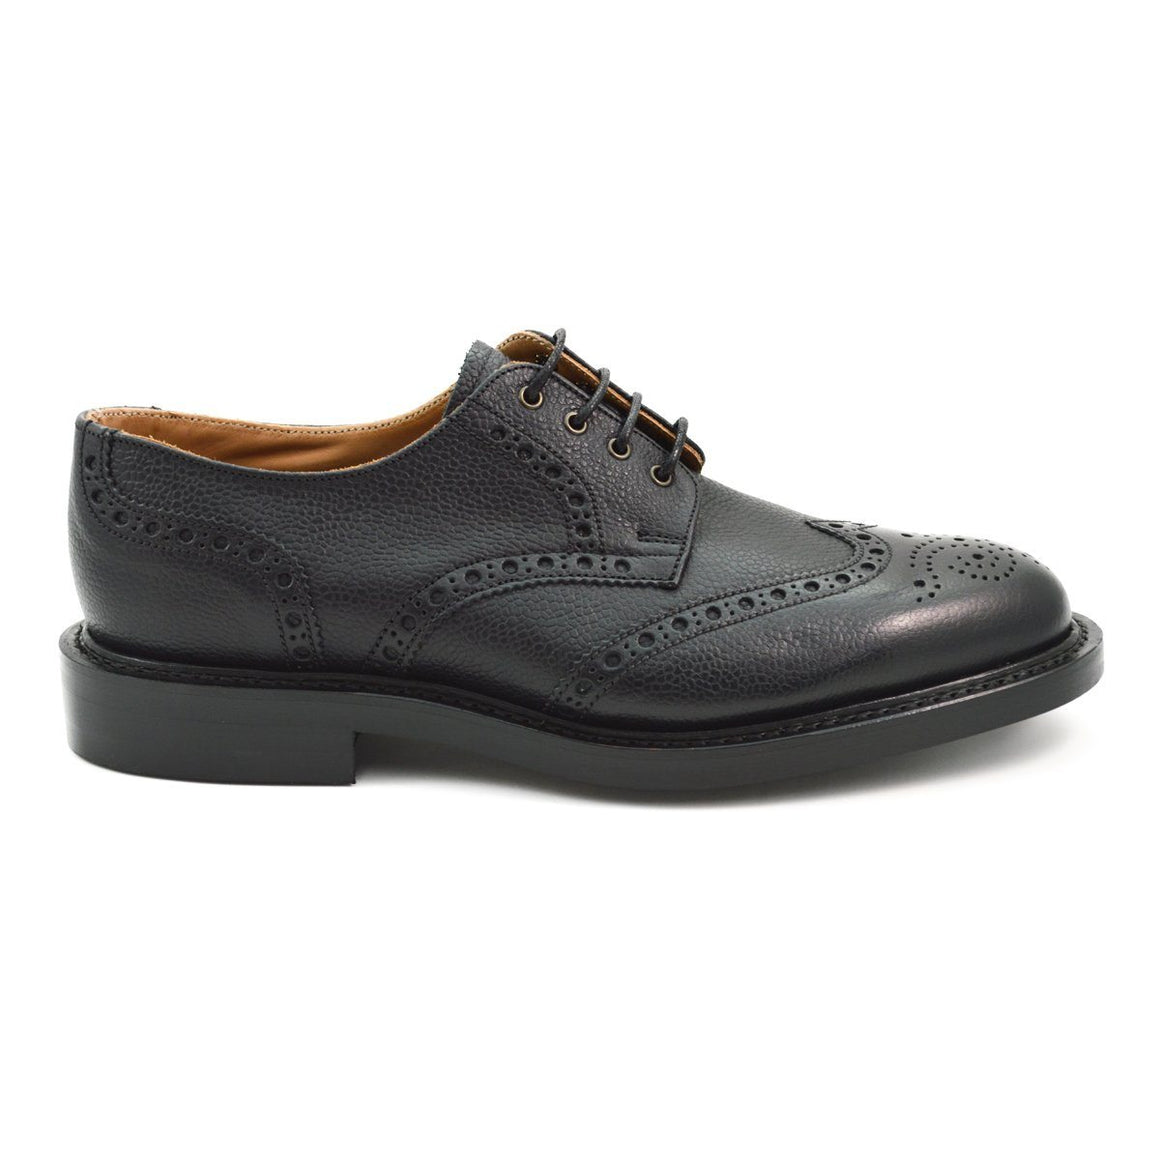 NPS WILSON Gibson Brogue Shoes - Black Grain with Dainite Sole